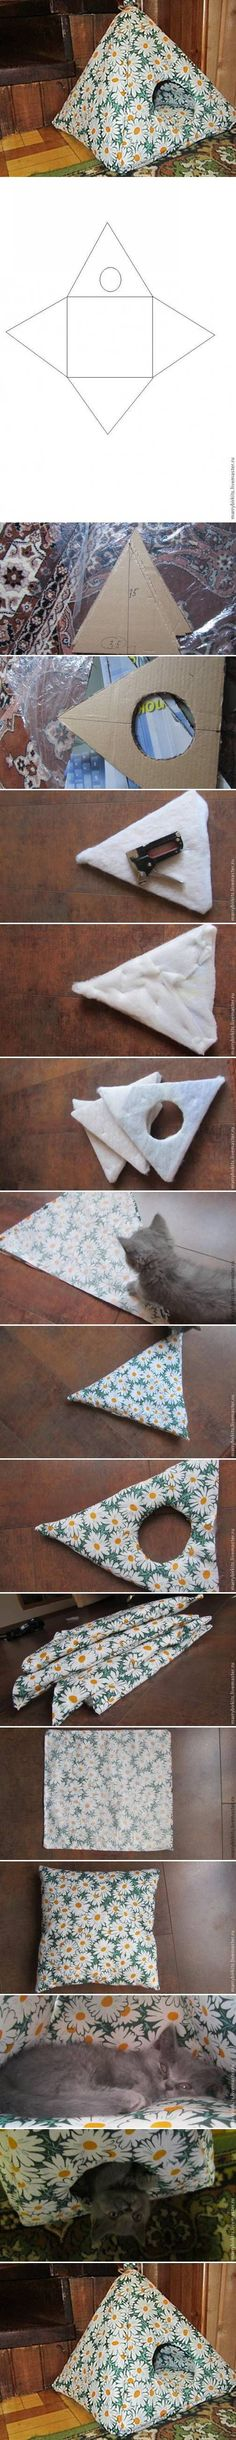 DIY House for Cat DIY House for Cat